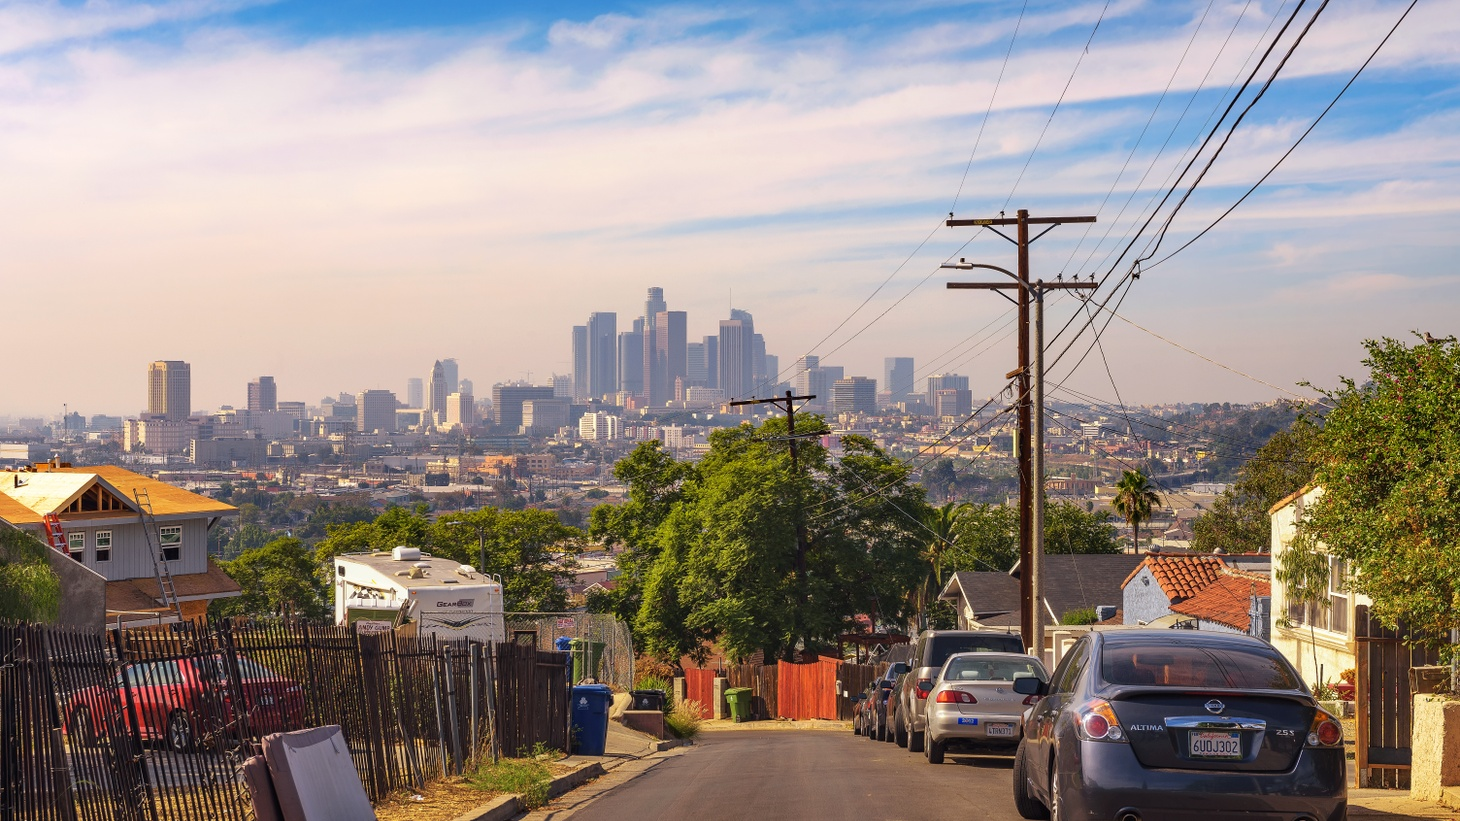 A view of the Los Angeles skyline from Lincoln Heights, where a group of local activists joined their neighborhood council to try to prevent gentrification.